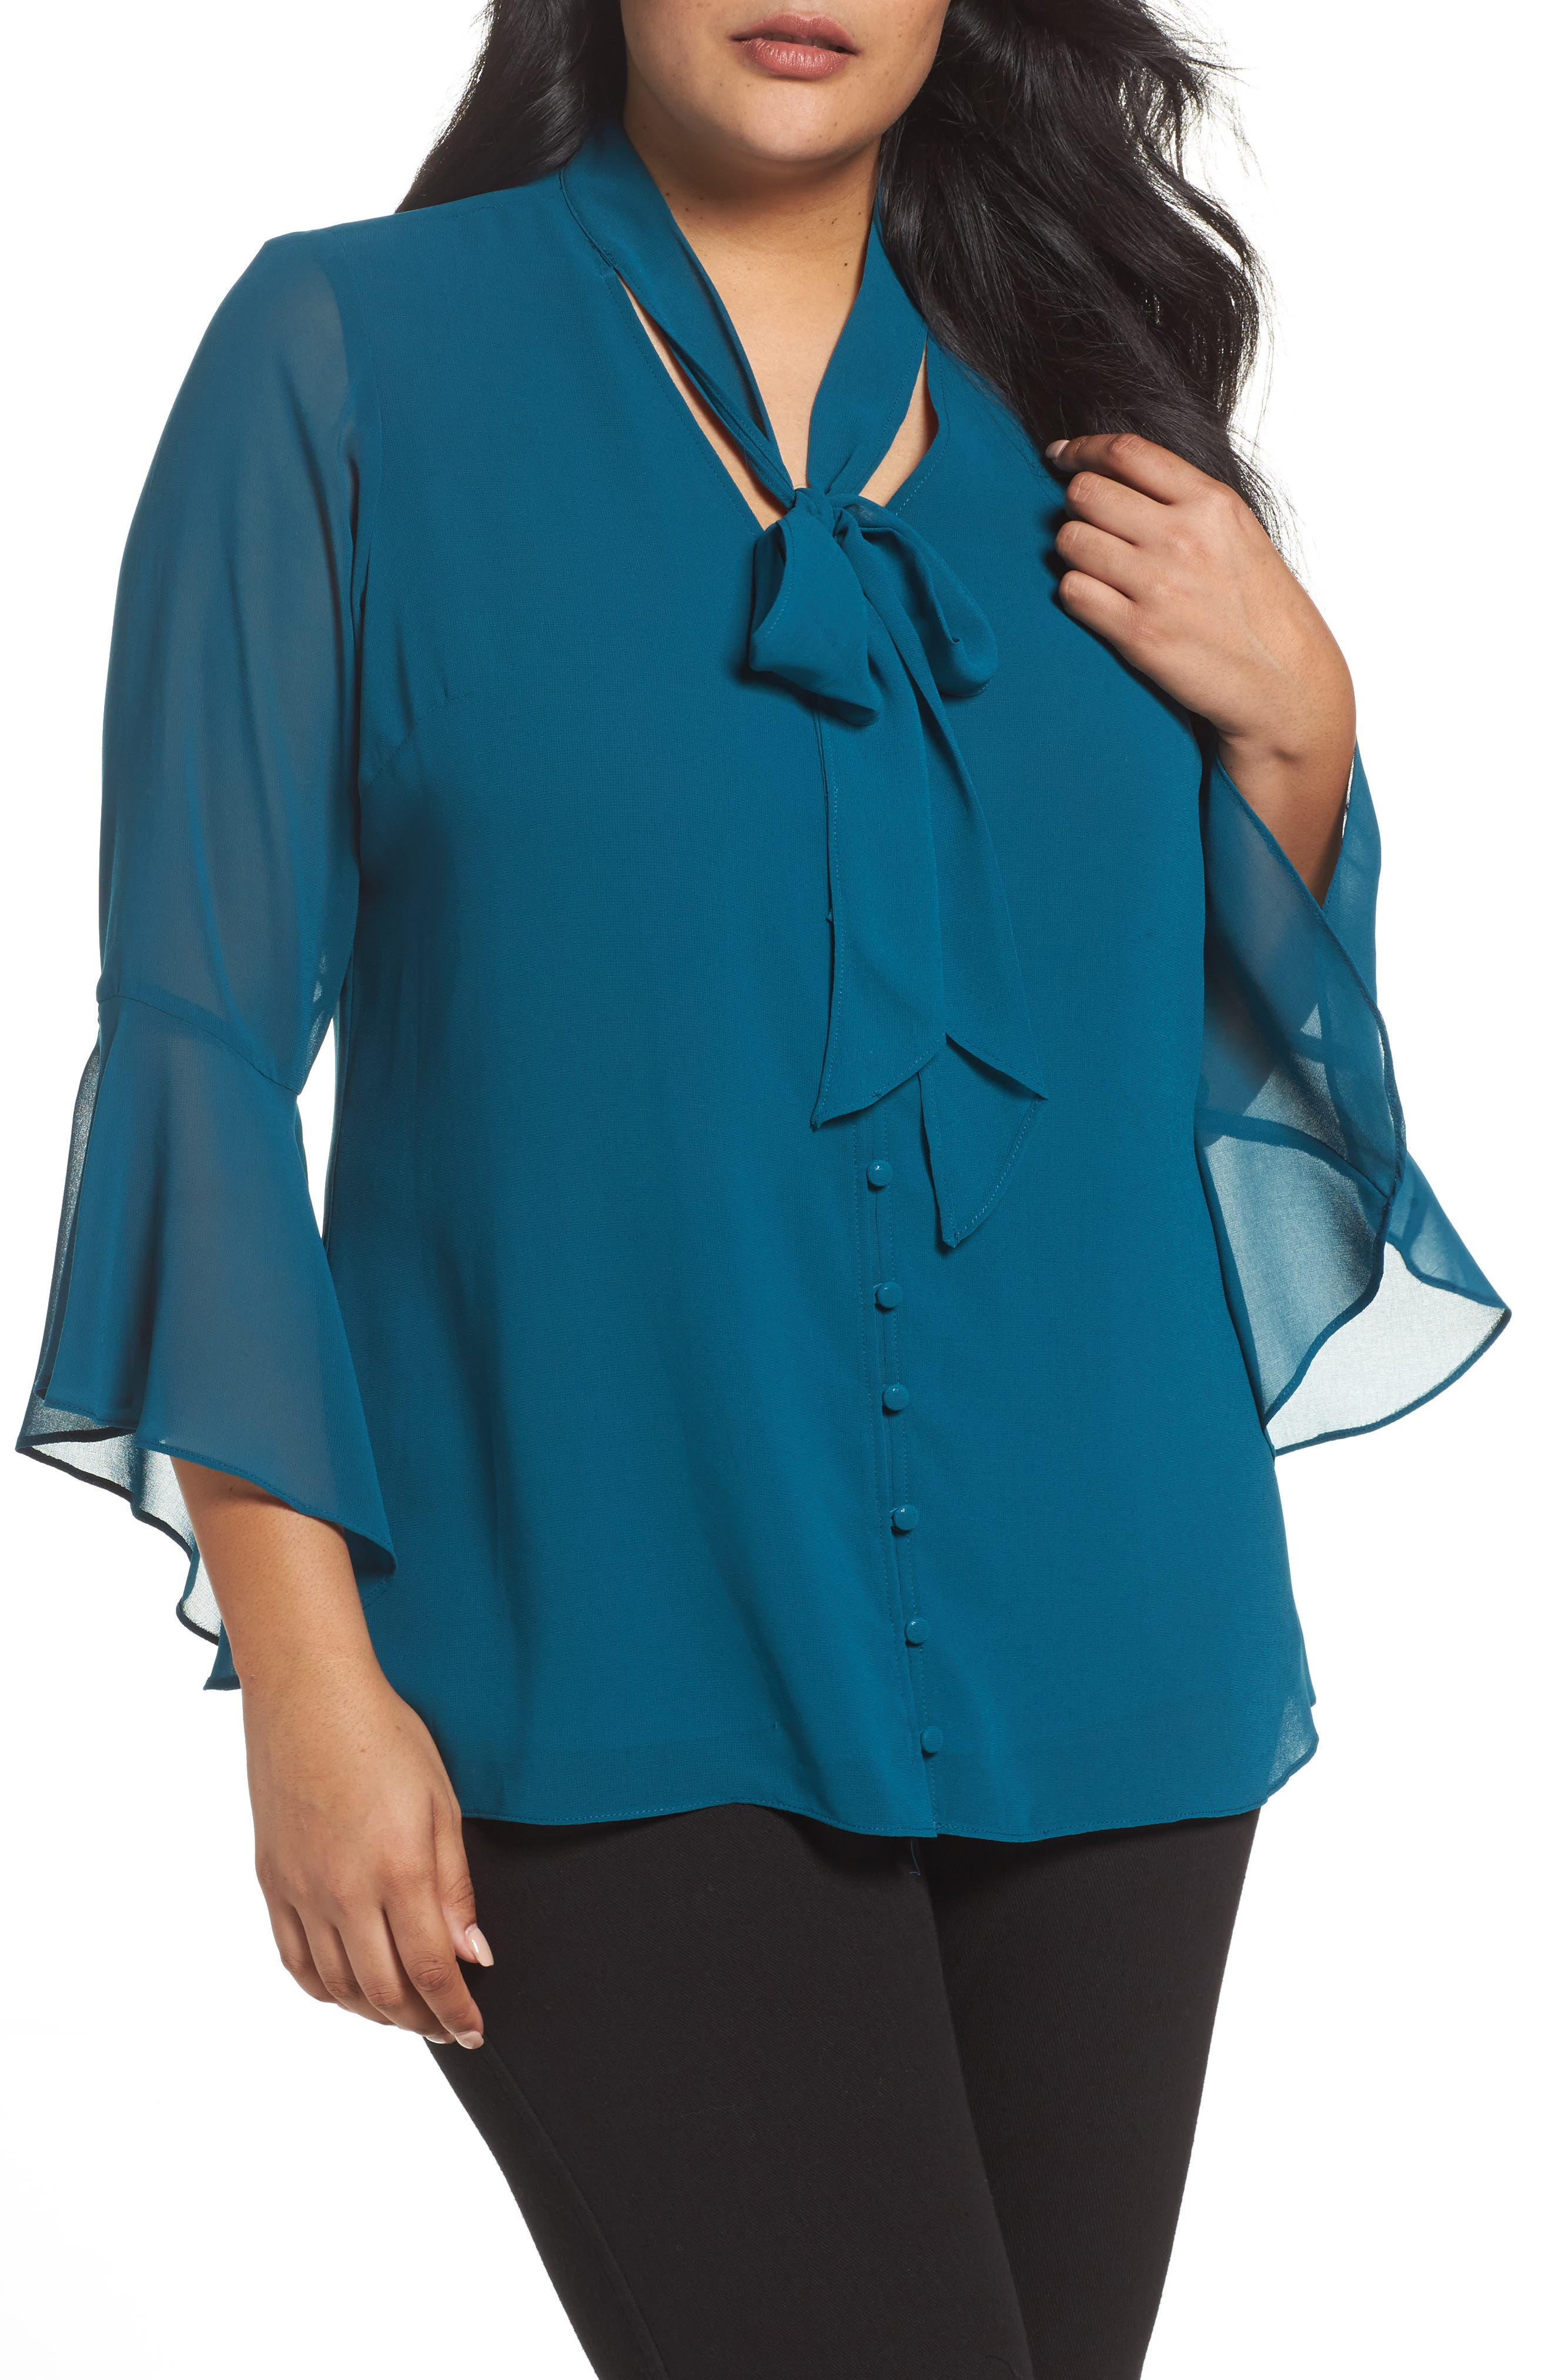 Alternate Image 1 Selected - City Chic Sweet Dreams Top (Plus Size)